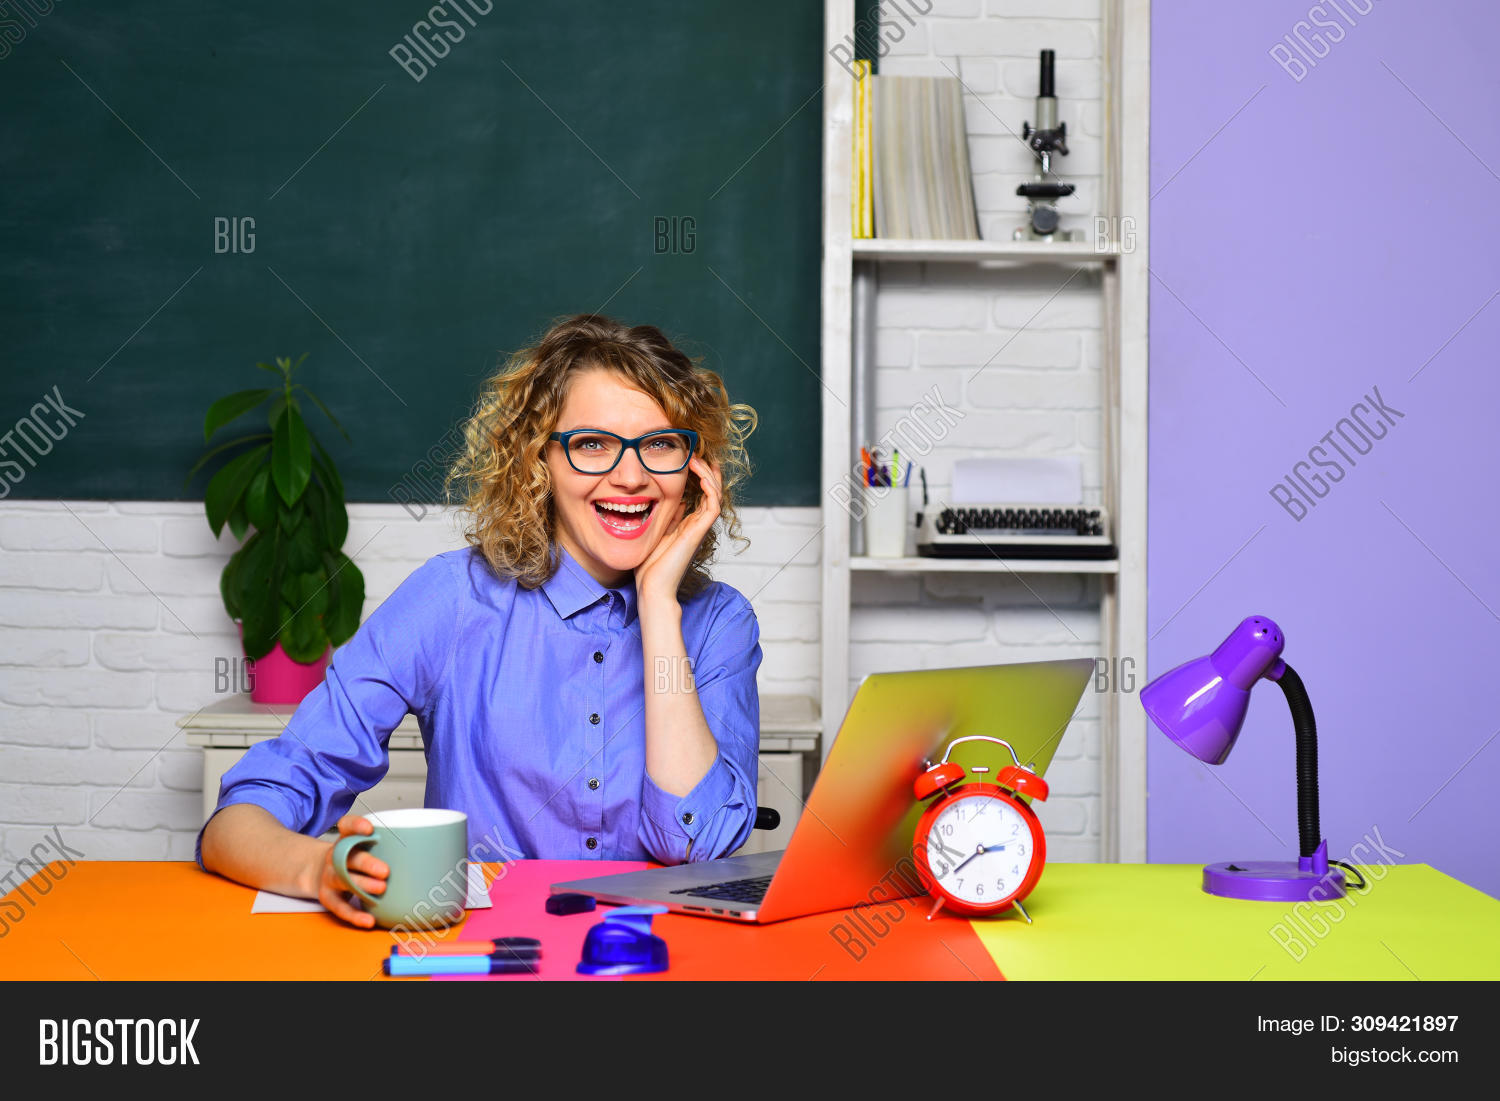 Adorable Teacher In Classroom. Young Happy Teacher. School Student. Creative Young Female Student In